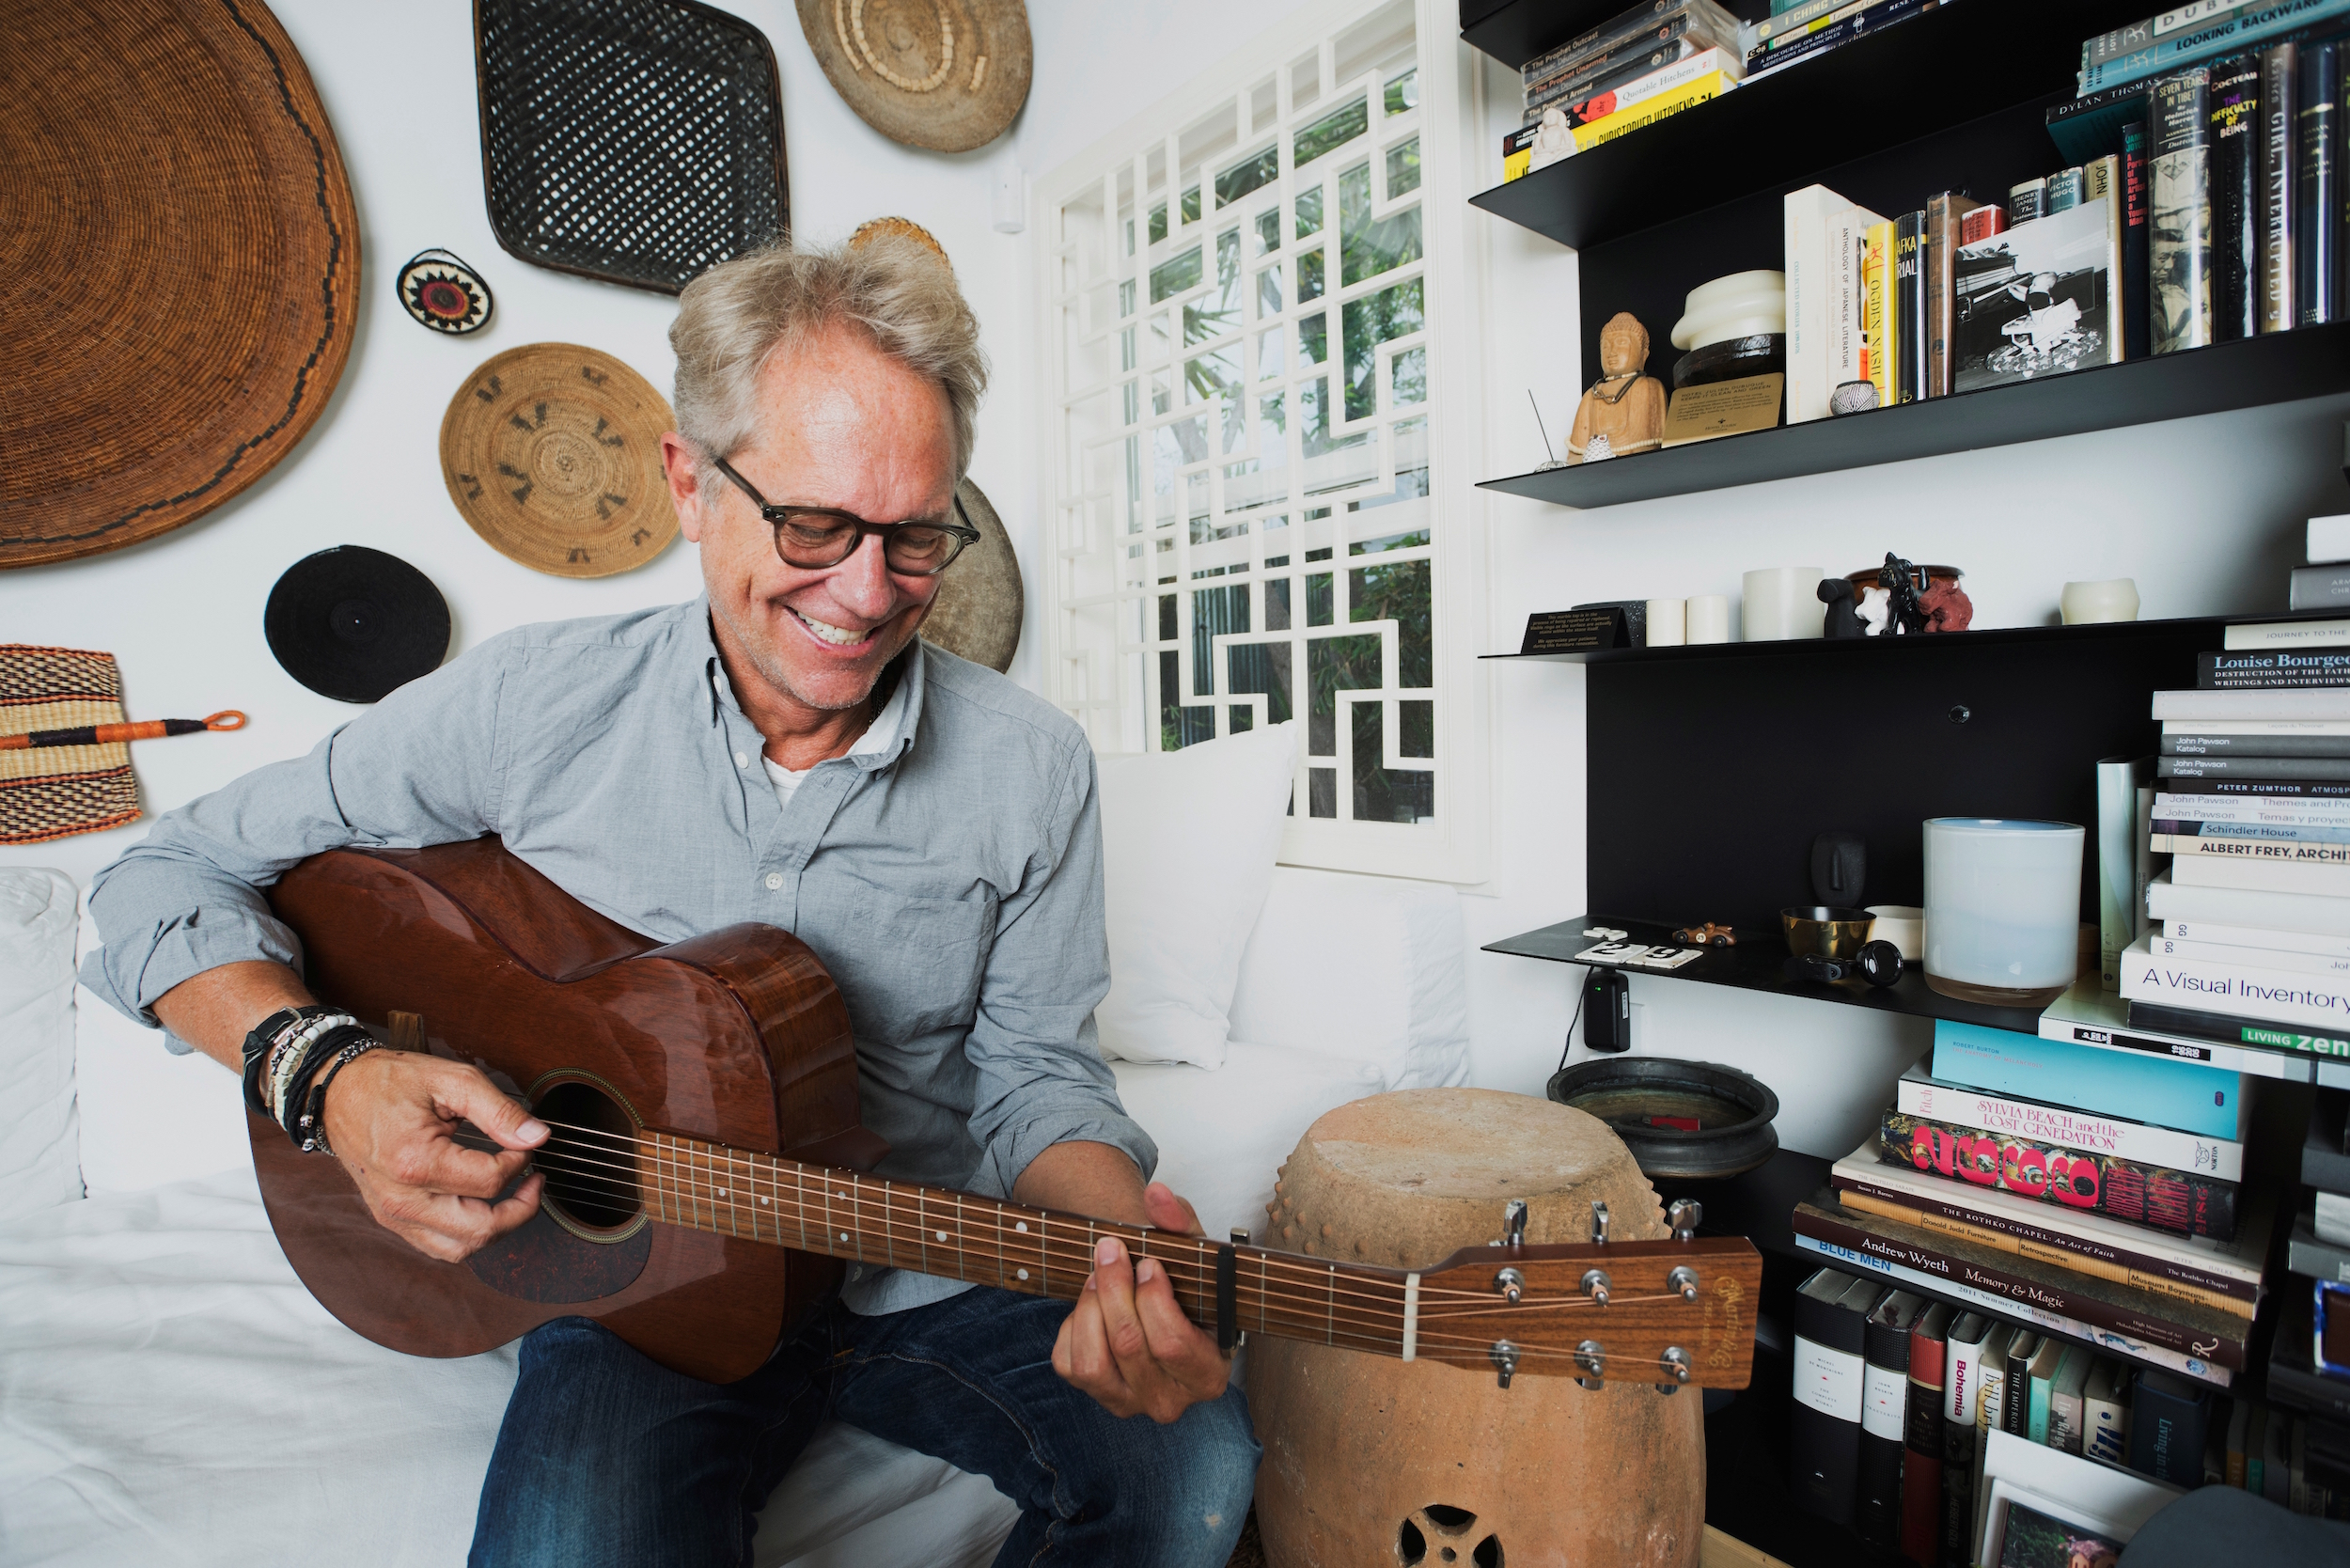 Gerry Beckley (Photo: Joe Beckley)